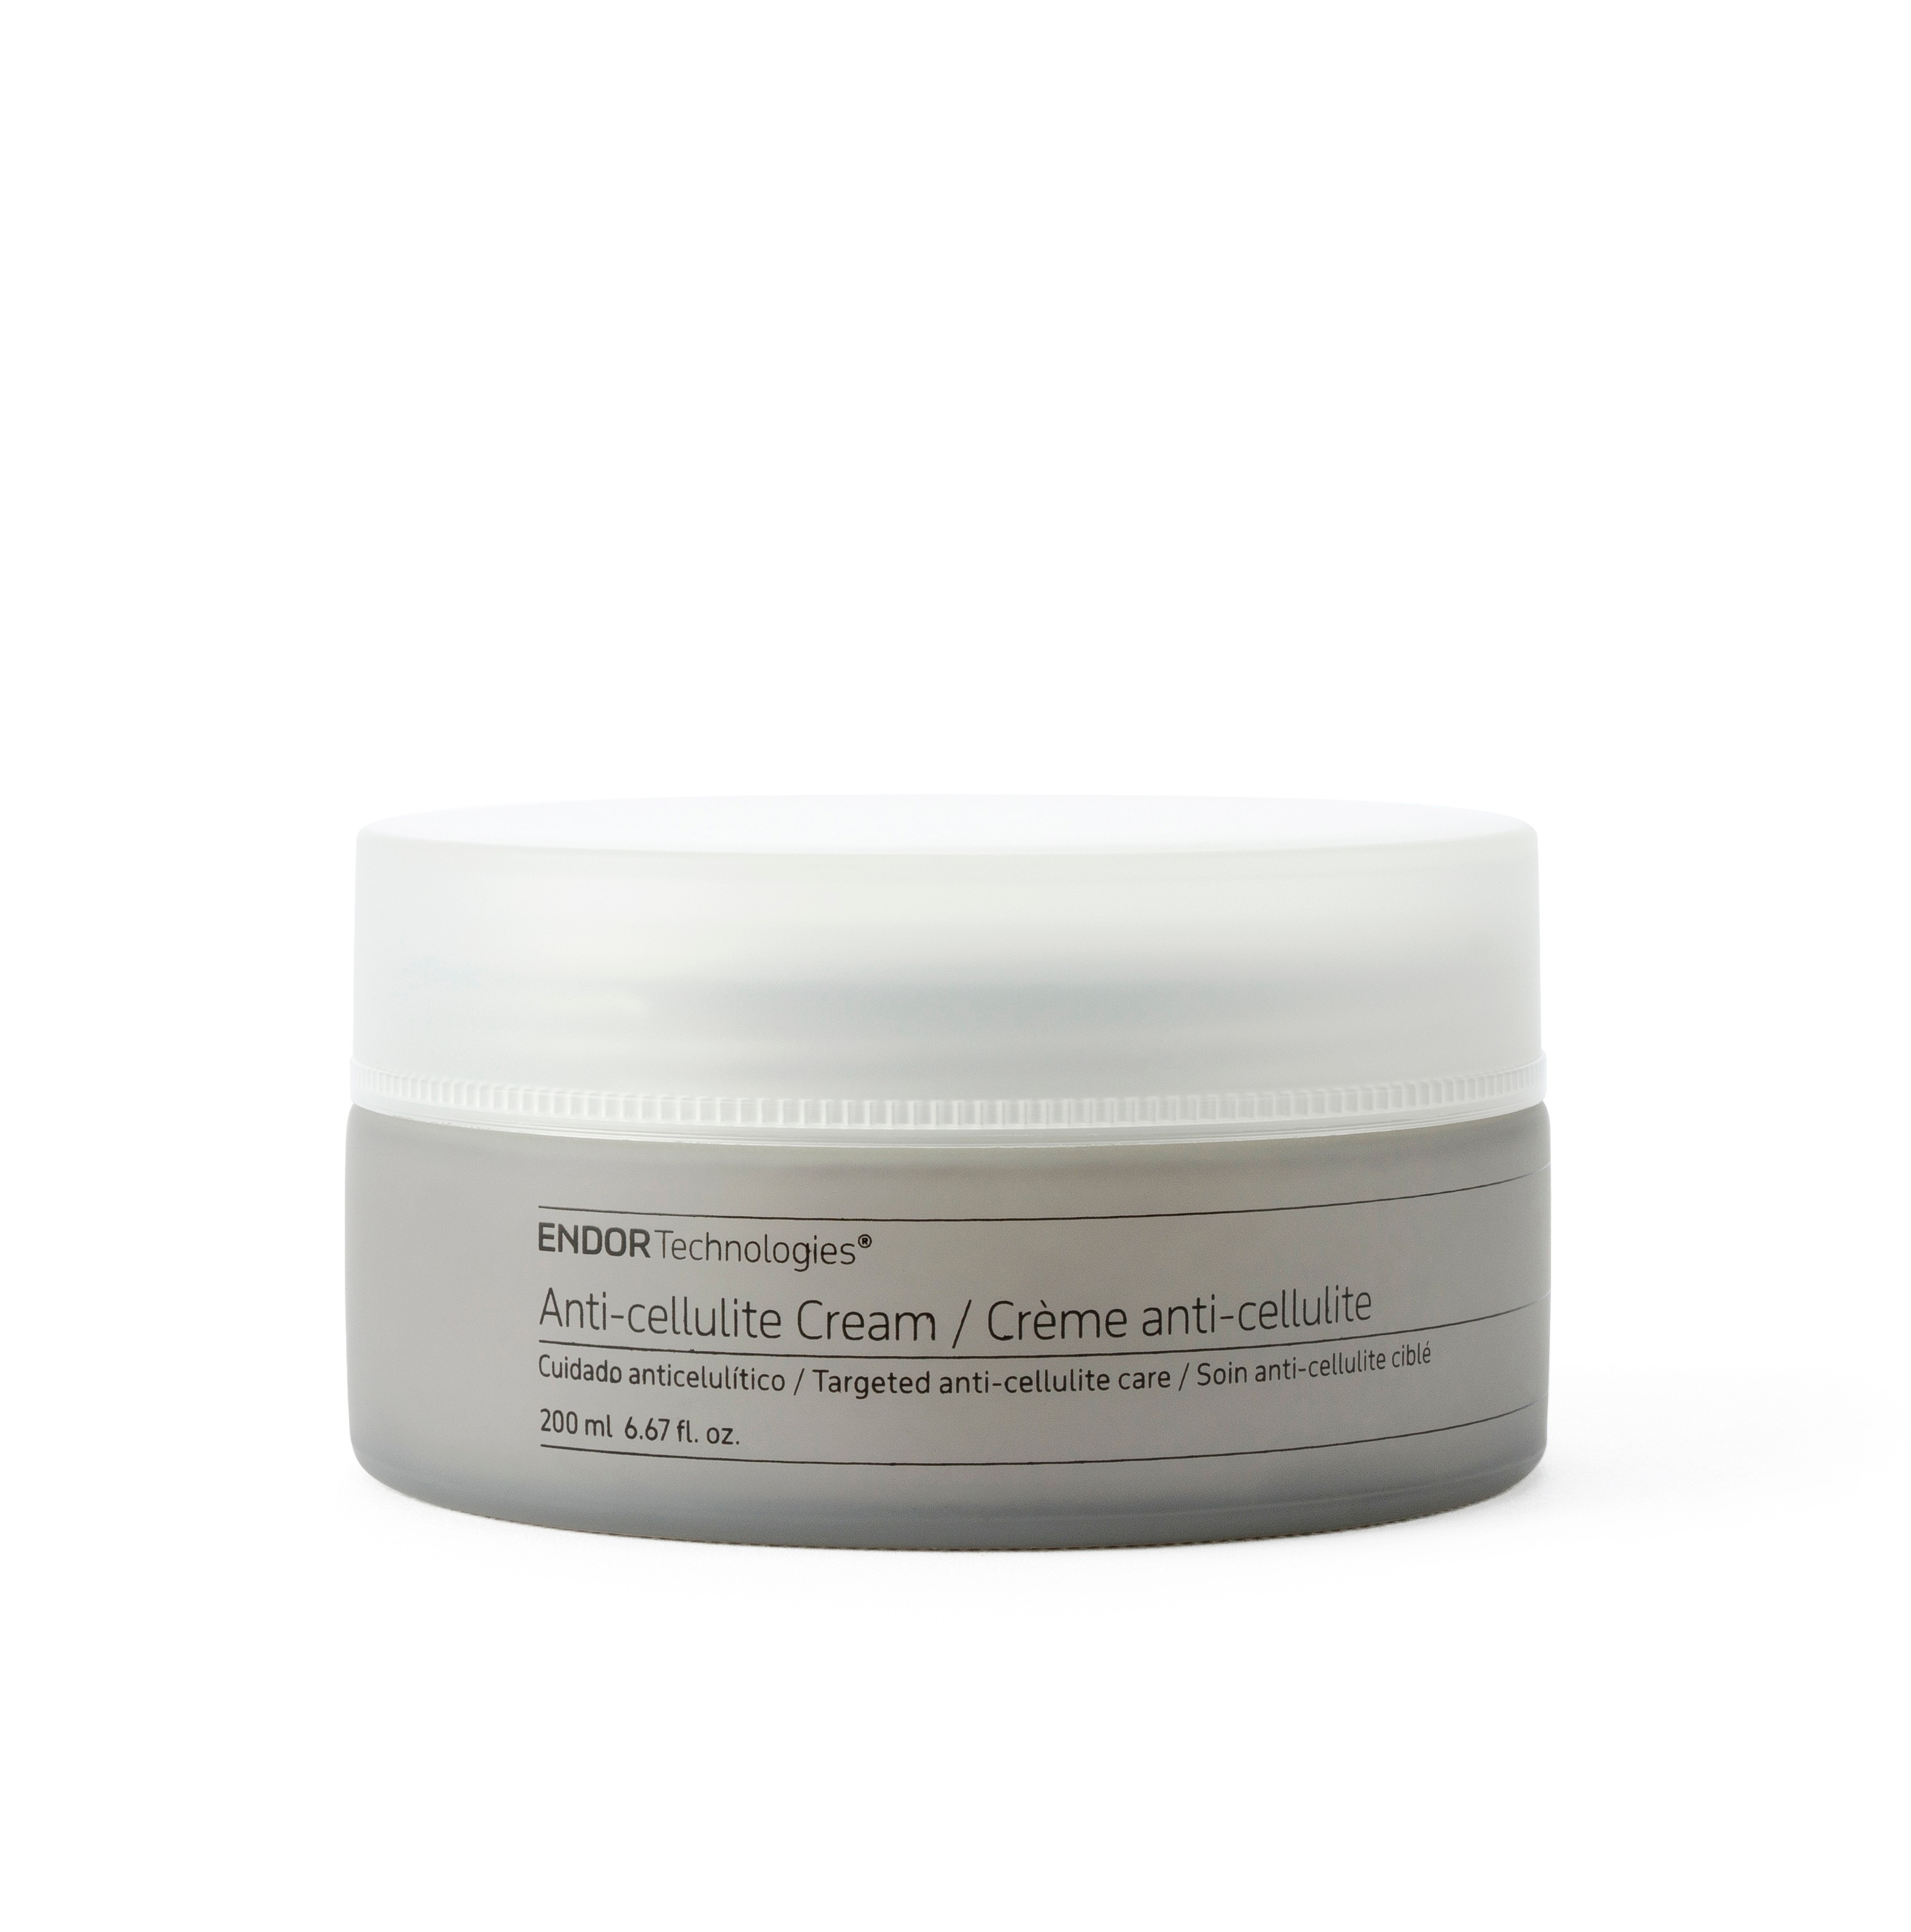 Anti-cellulite Cream Endor